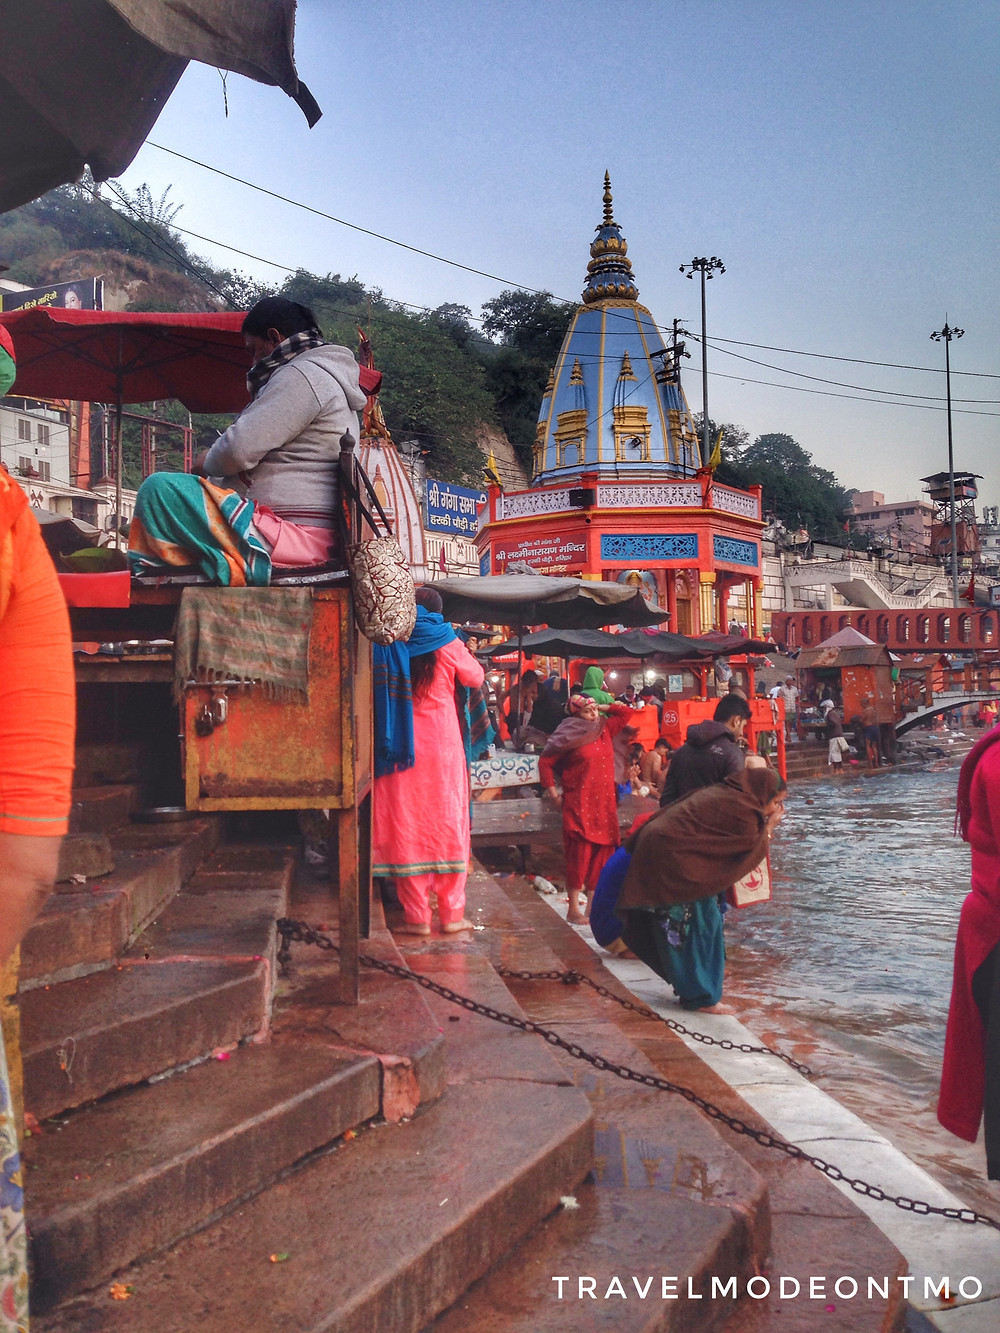 Devotees offering prayers and taking a dip in Holy River Ganges